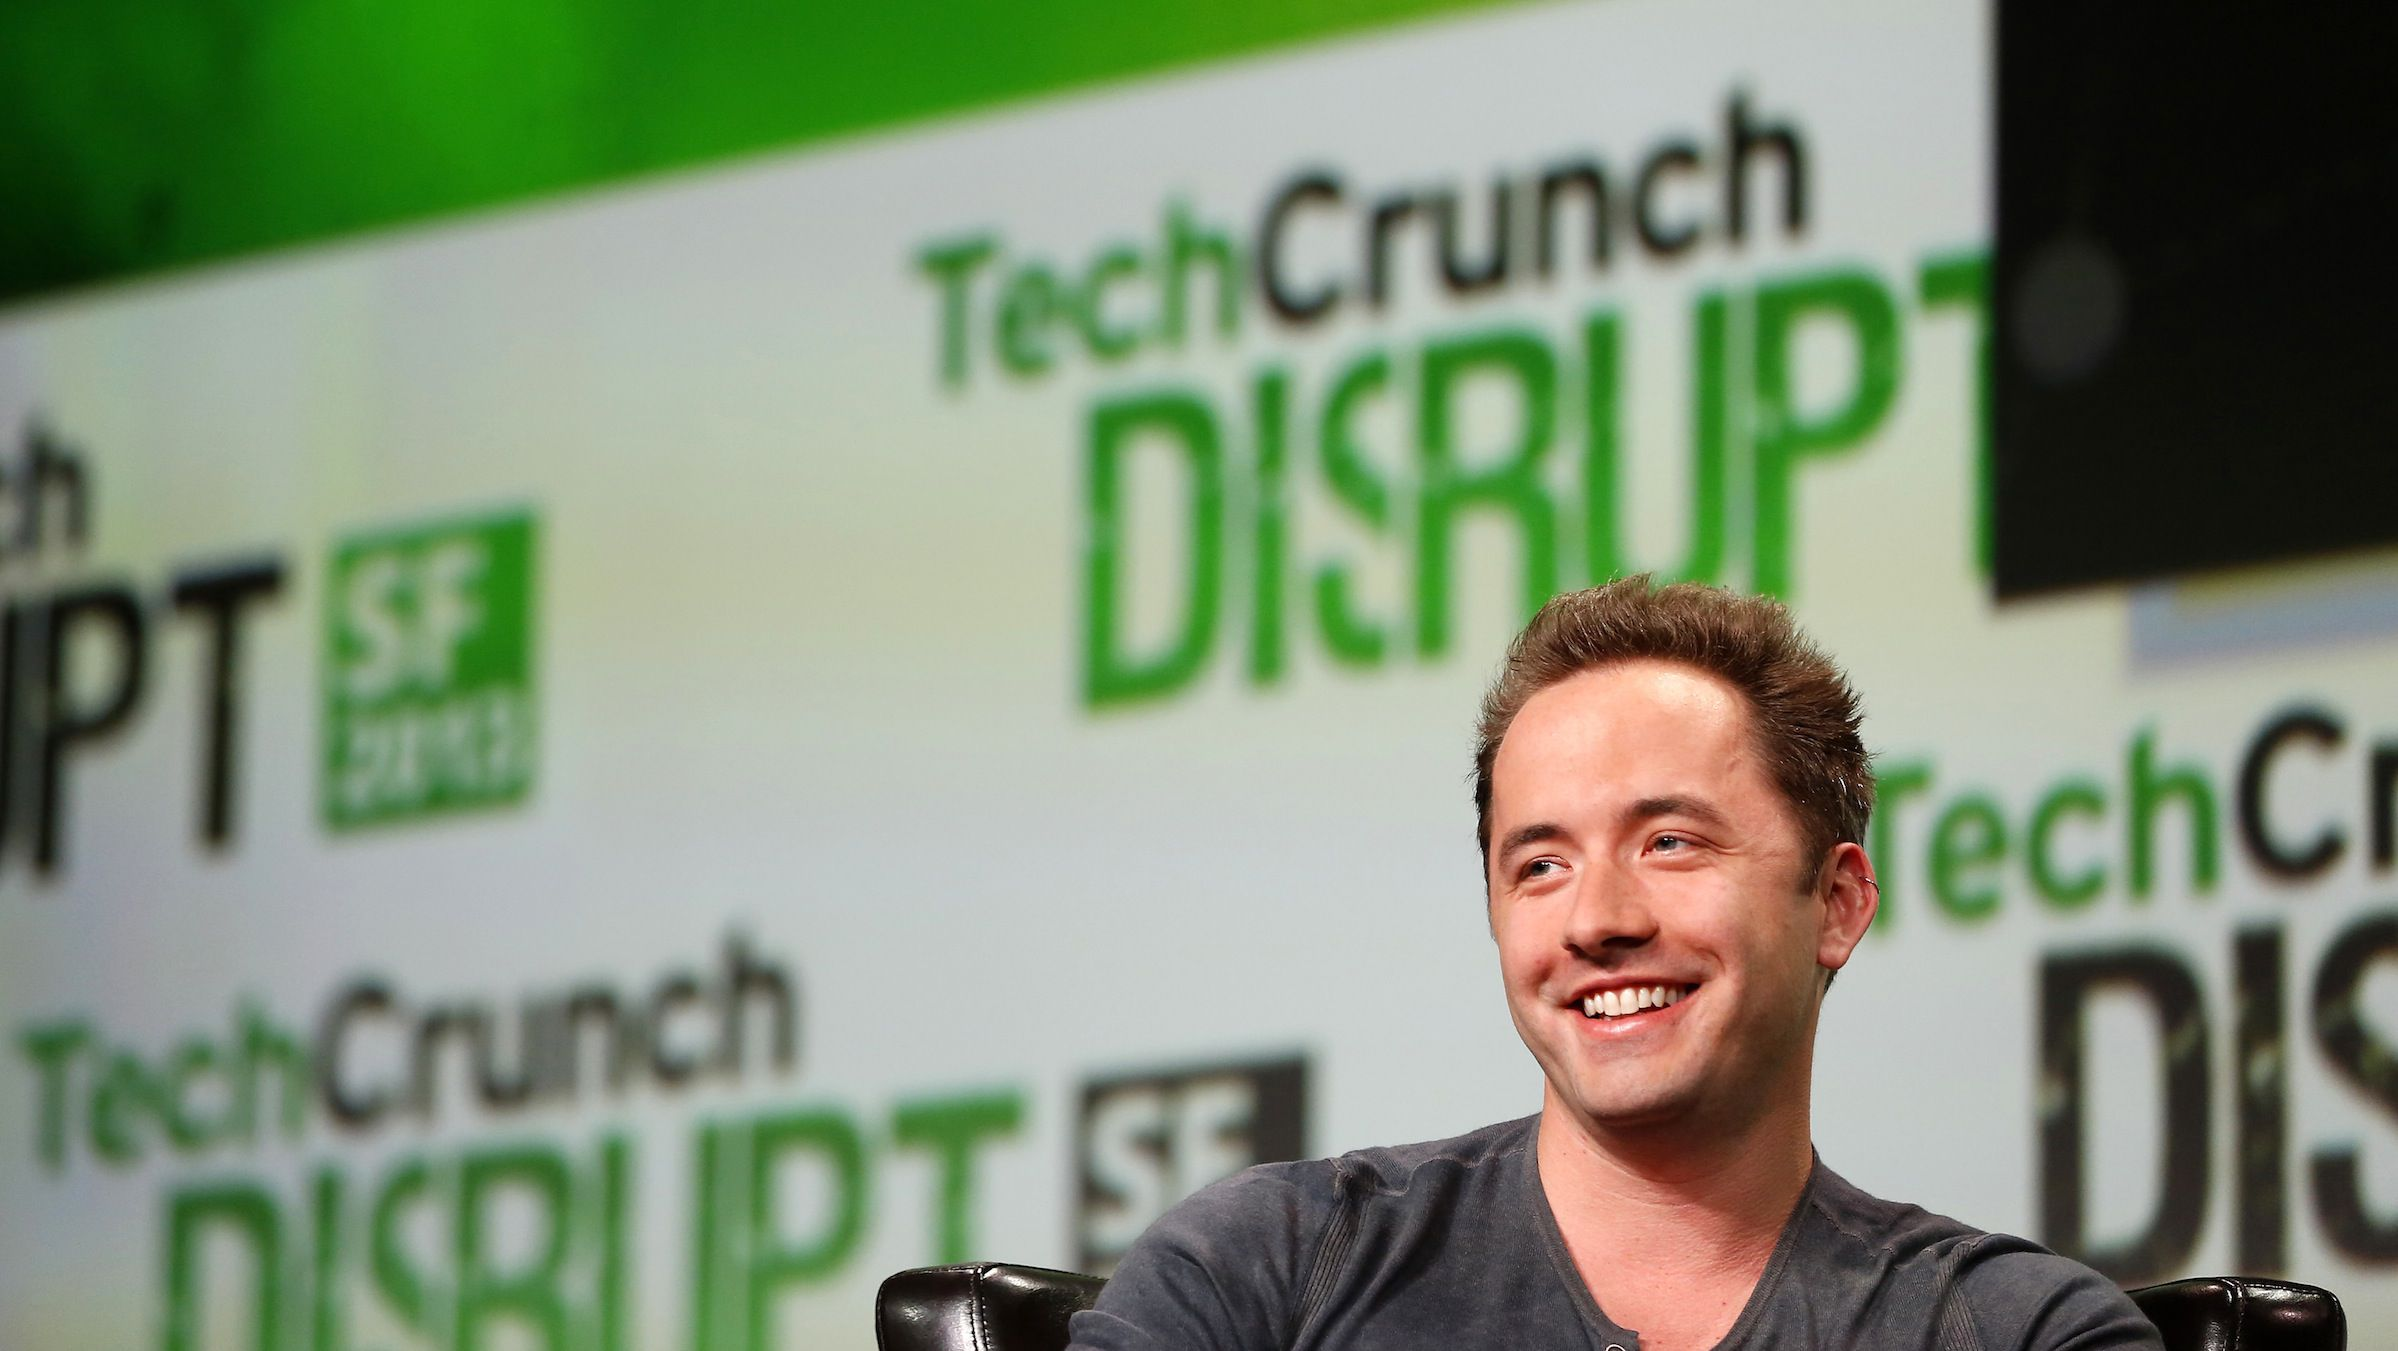 Drew Houston, CEO and Co-Founder of Dropbox, speaks on stage during a fireside chat session at TechCrunch Disrupt SF 2013 in San Francisco, California September 9, 2013. REUTERS/Stephen Lam (UNITED STATES - Tags: BUSINESS SCIENCE TECHNOLOGY) - RTX13ESW